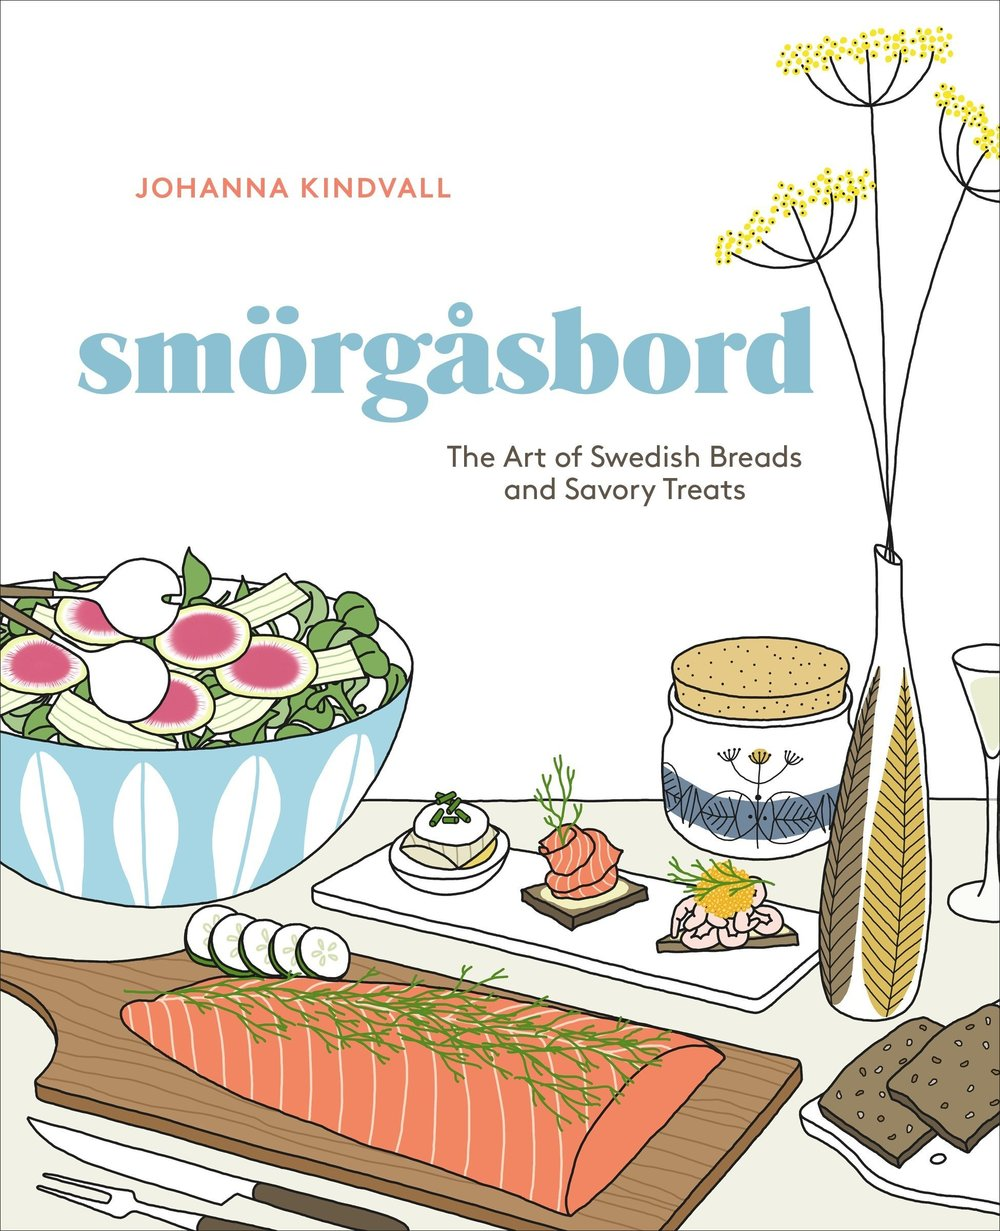 Smorgasbord - Swedish Breads & Savory Treats Cookbook $12